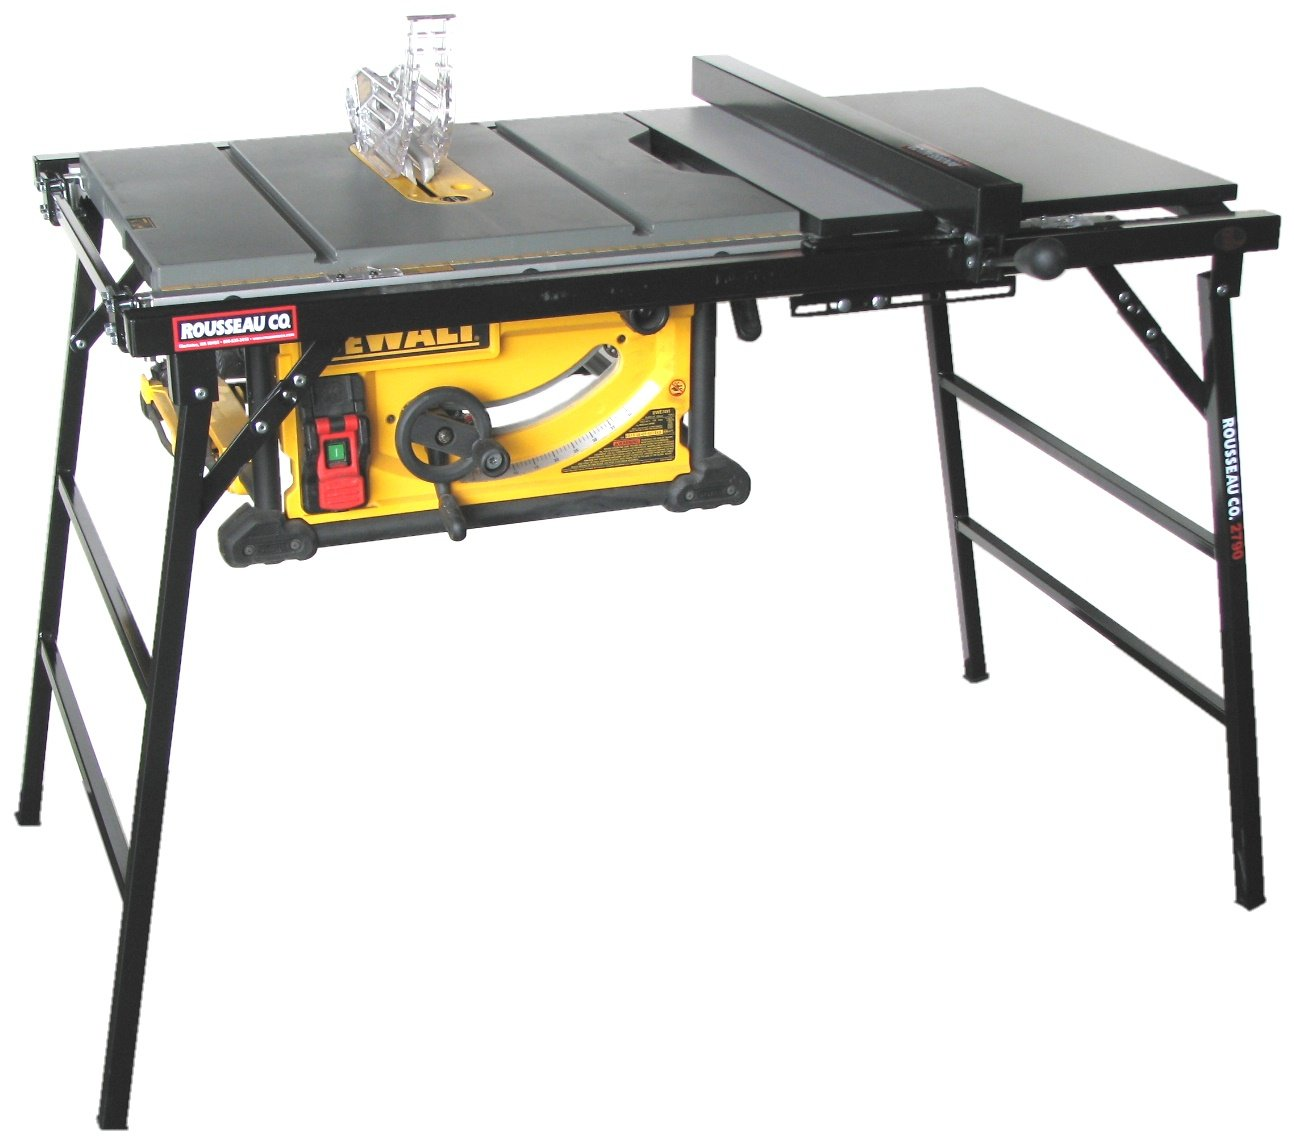 Rousseau 2790 Table Saw Stand for Larger Portable Saws (REPLACES: Rousseau Model 2775) by Rousseau